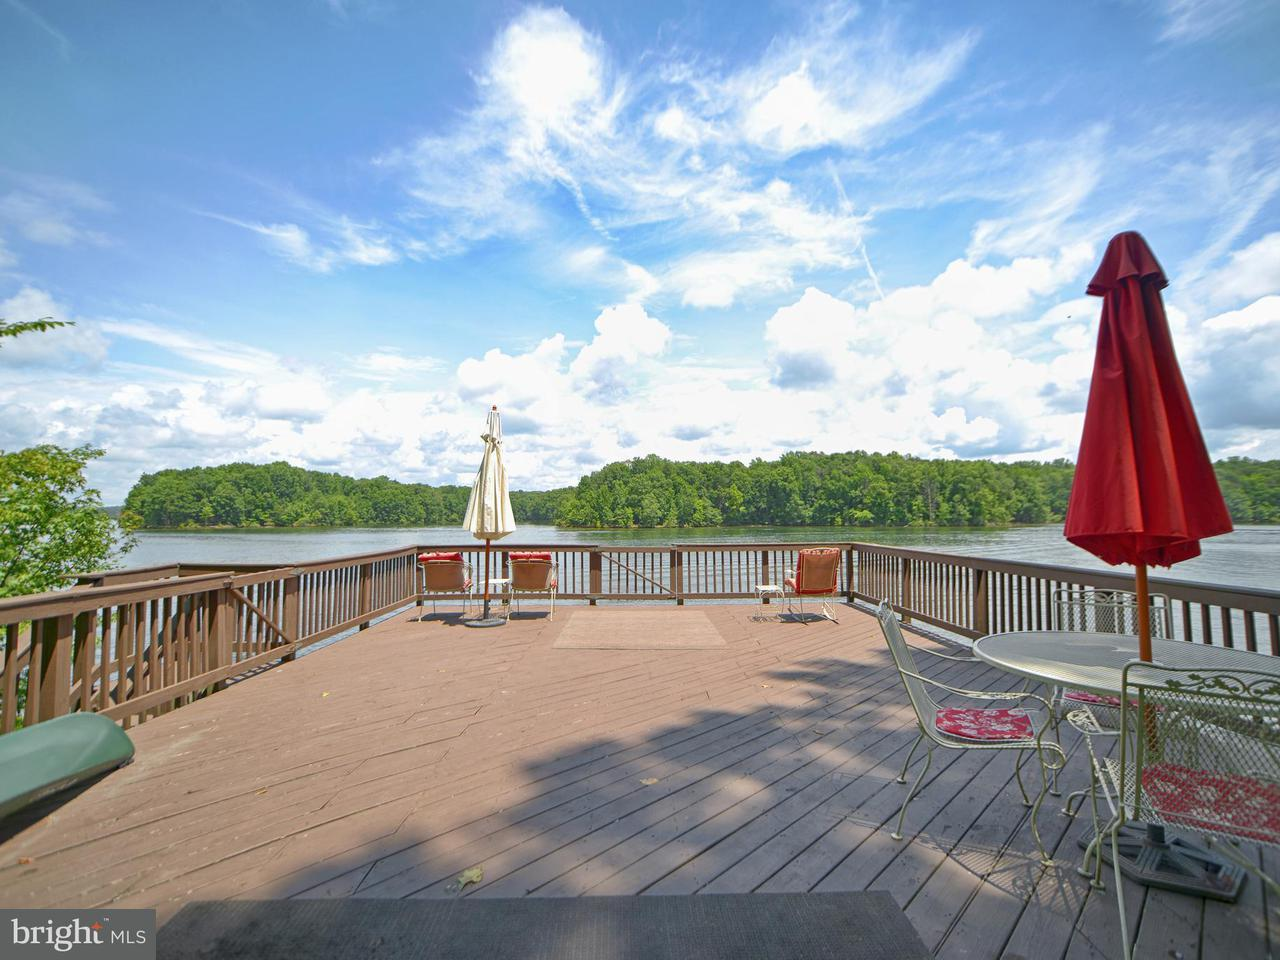 Additional photo for property listing at 1267 ANNA COVES BLVD 1267 ANNA COVES BLVD Mineral, Virginia 23117 Vereinigte Staaten